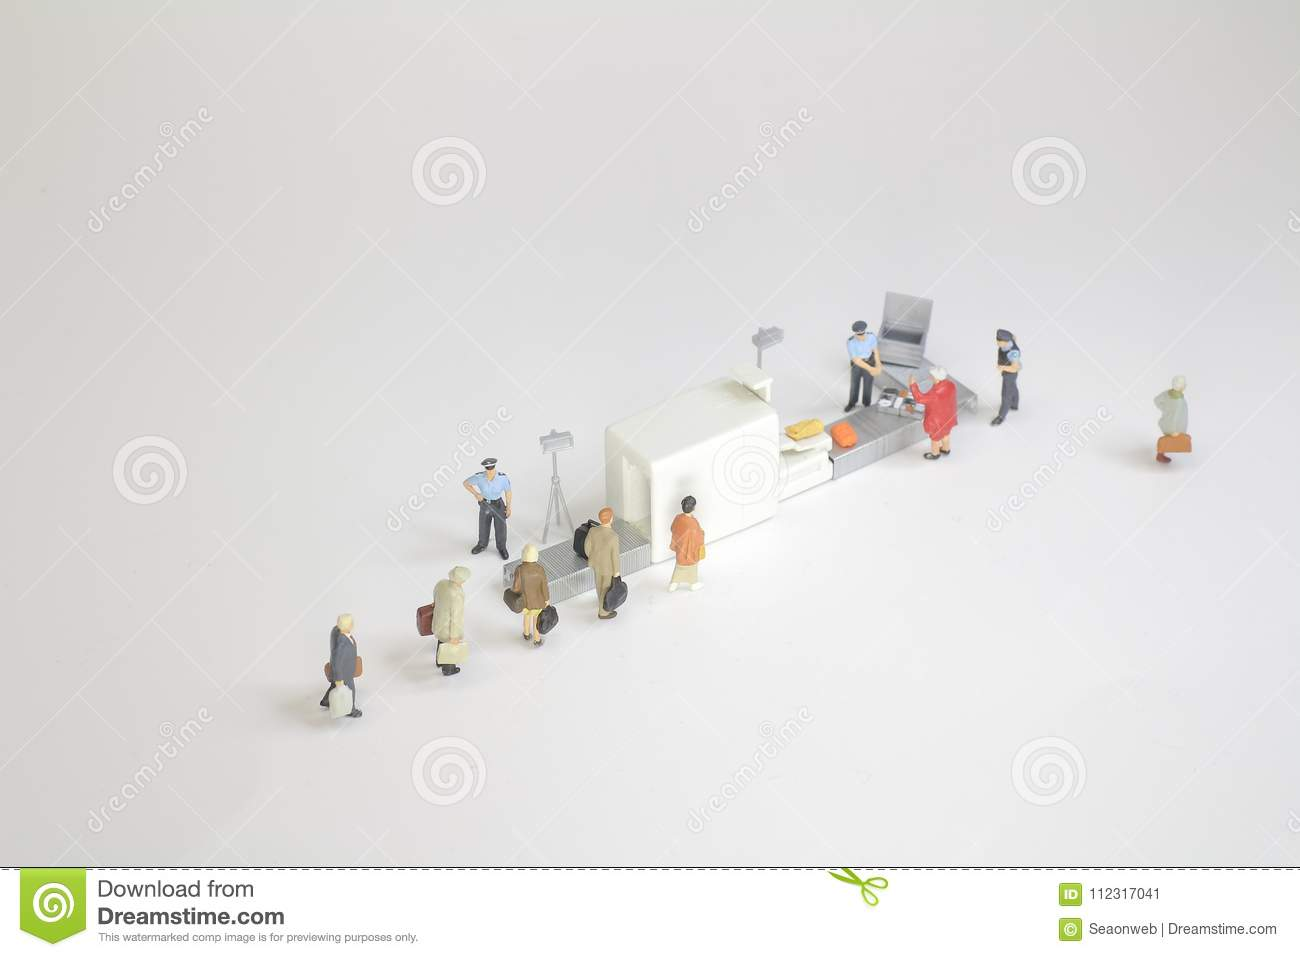 A security check with isometric people in queue stock illustration download a security check with isometric people in queue stock illustration illustration of symbol ccuart Images